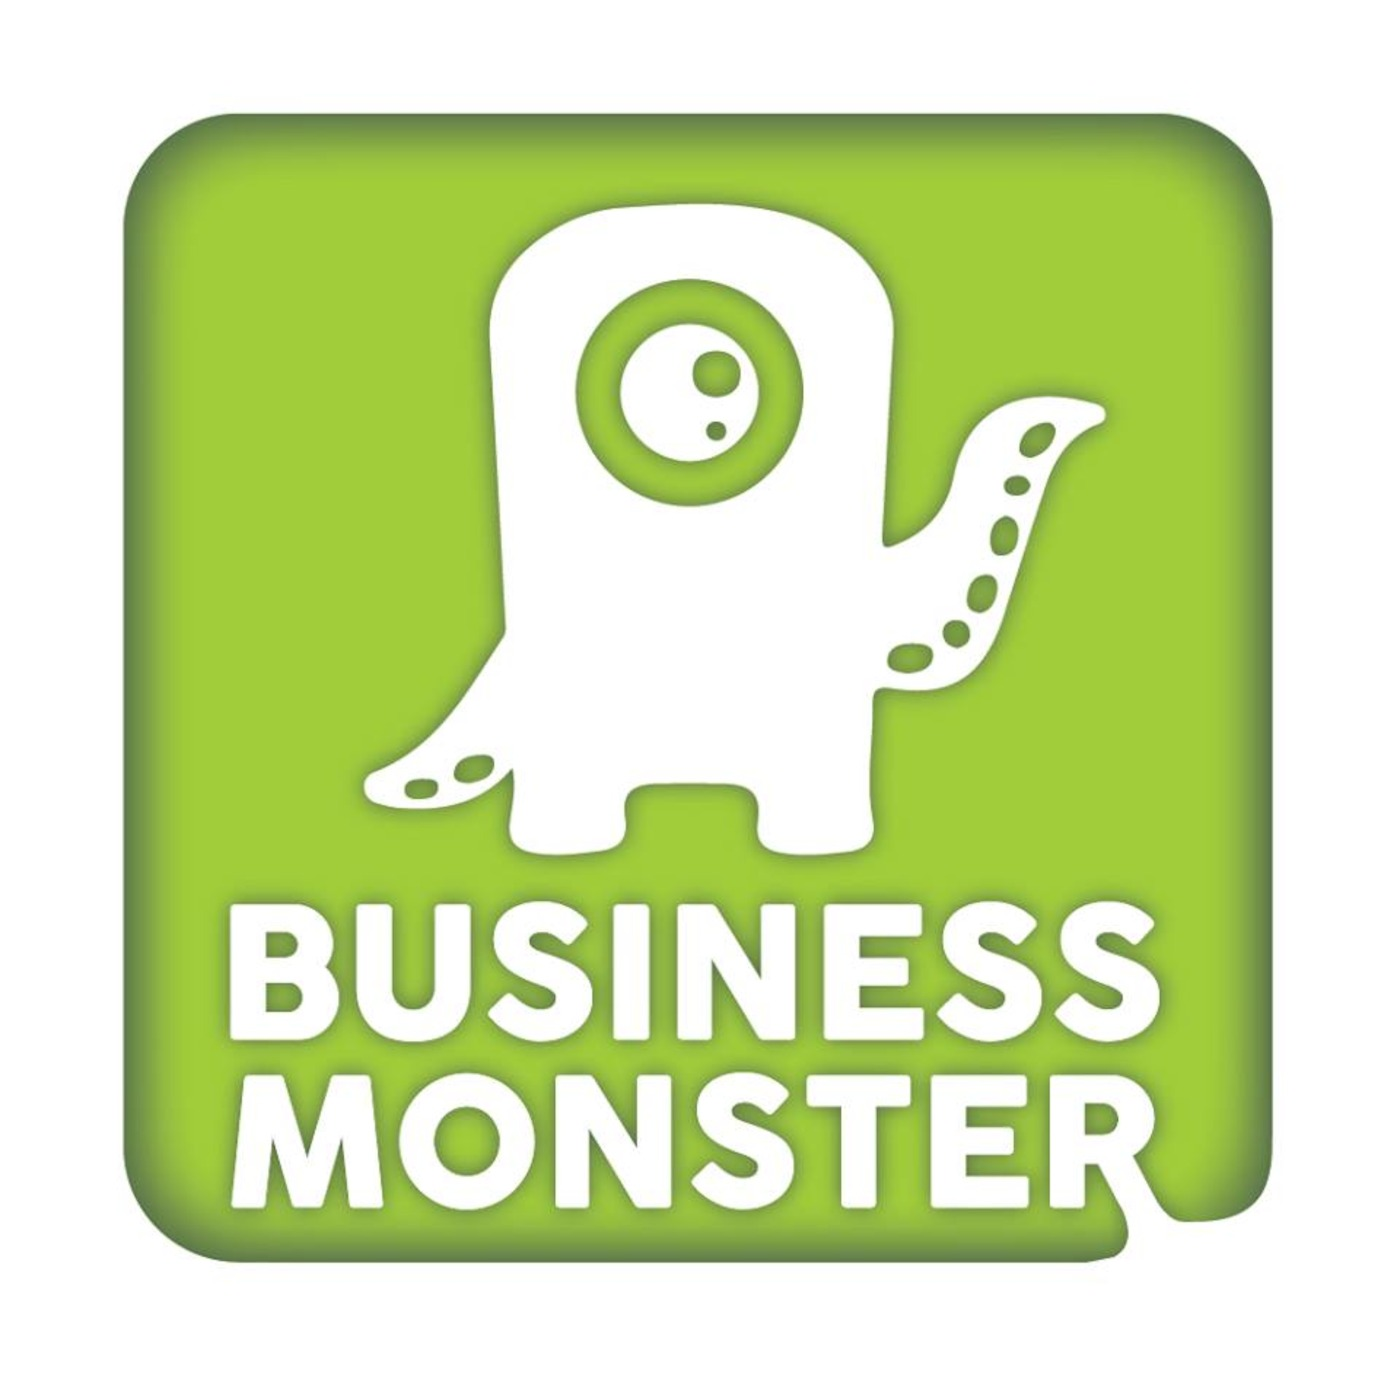 YOUR BUSINESS MONSTER